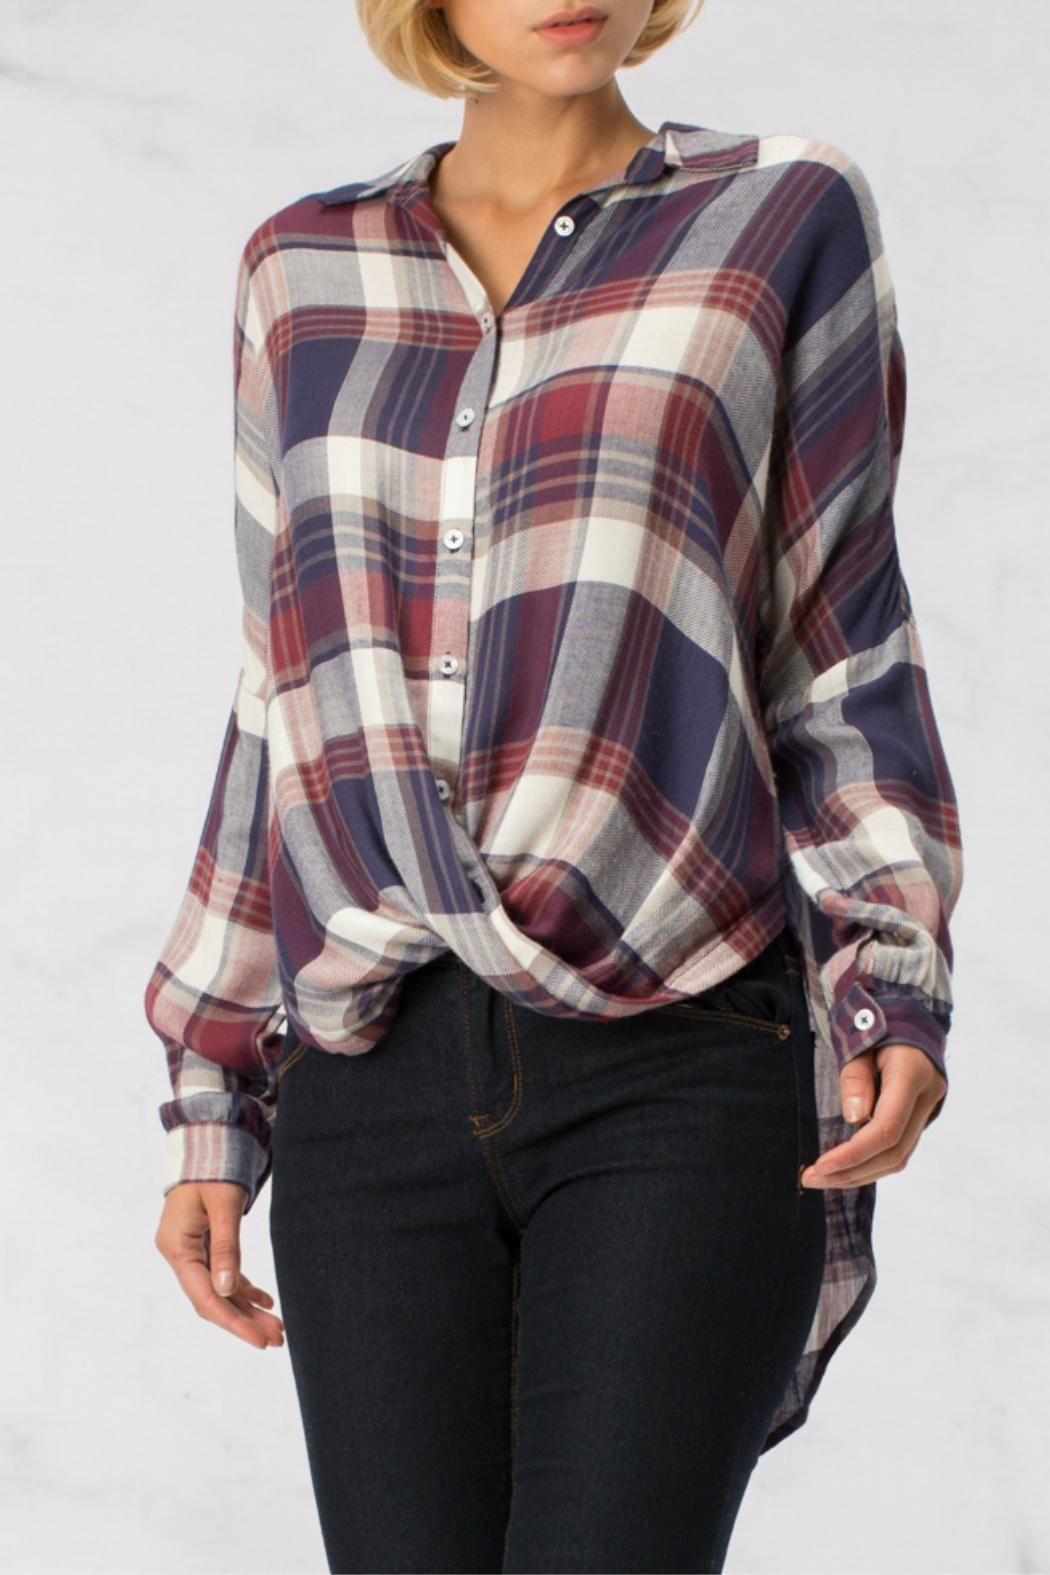 Plaid is everywhere this fall and we love these oversized tunics! Button-down with a twist-front making the hem longer in back.   Oversized Twisted Plaid Tunic by HYFVE. Clothing - Tops - Tunics Branford, Connecticut